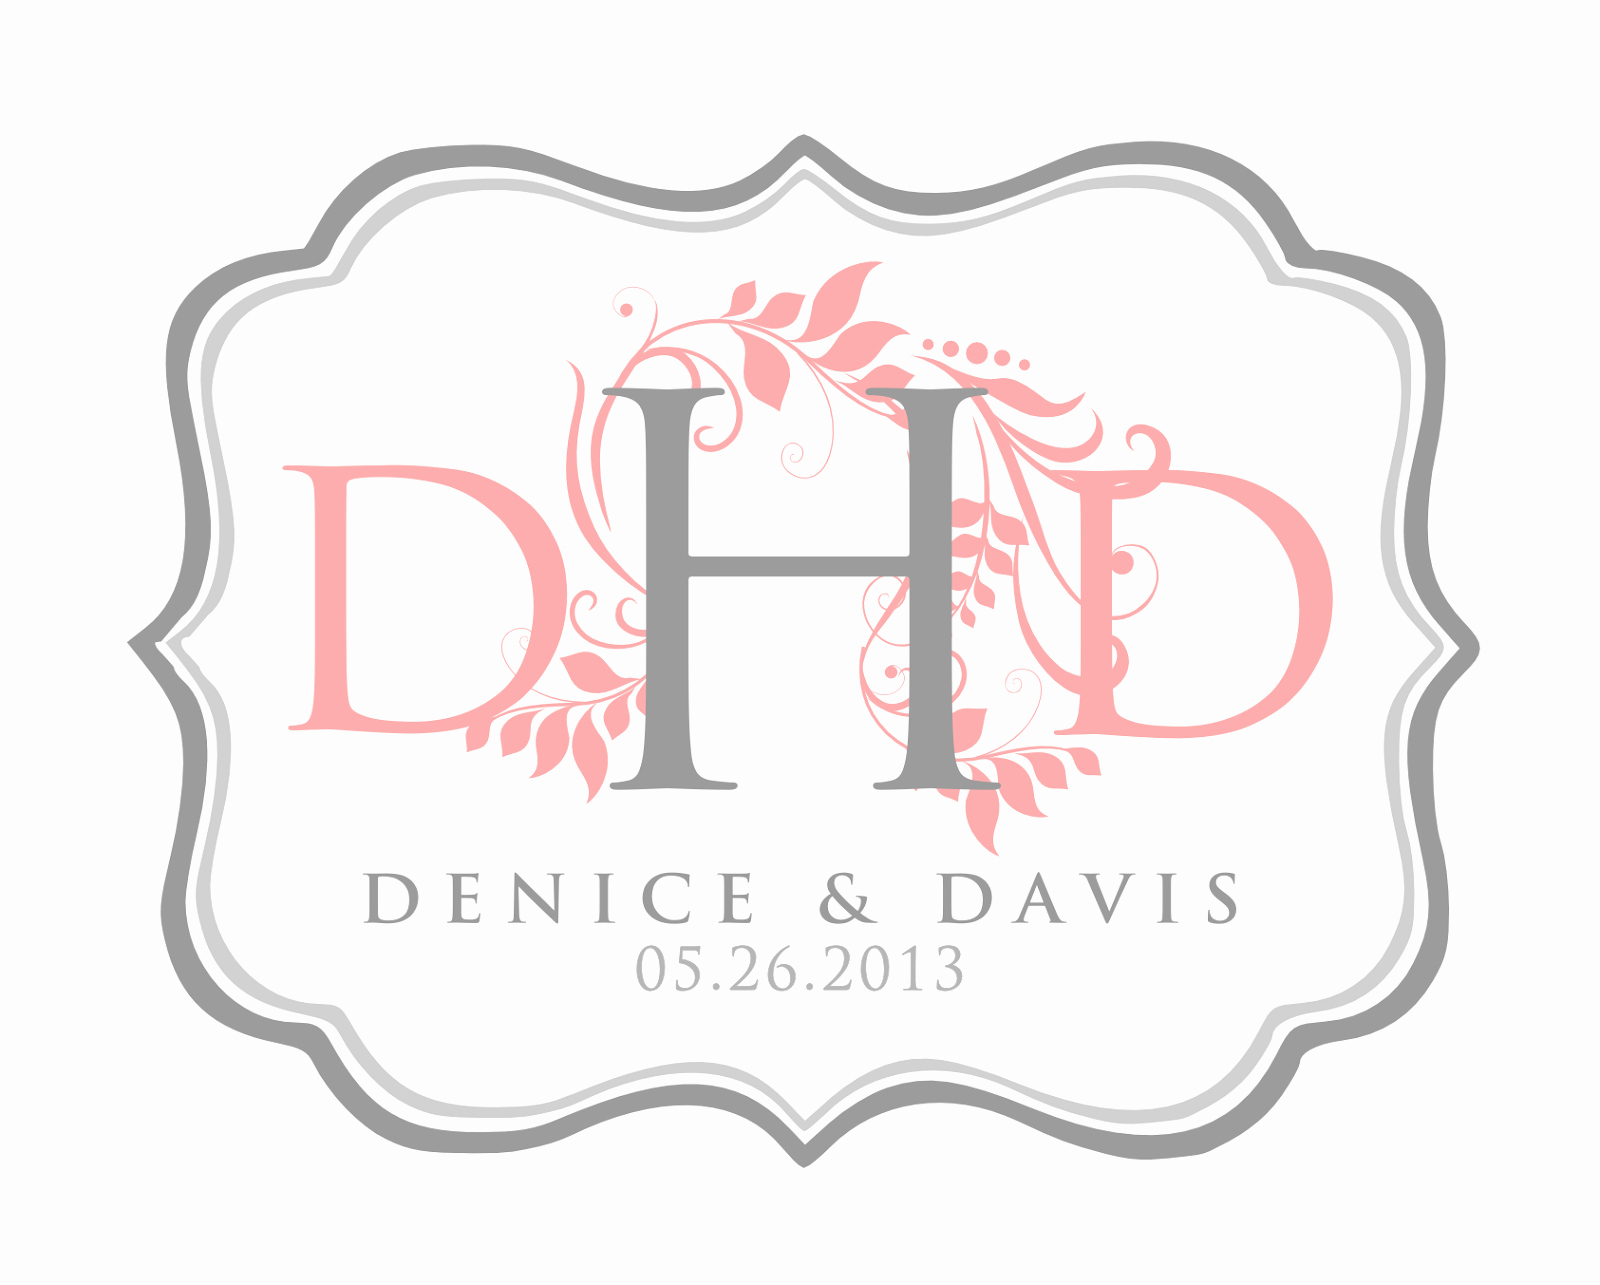 Free Wedding Monogram Template Lovely Signatures by Sarah Wedding Stationery for Denice